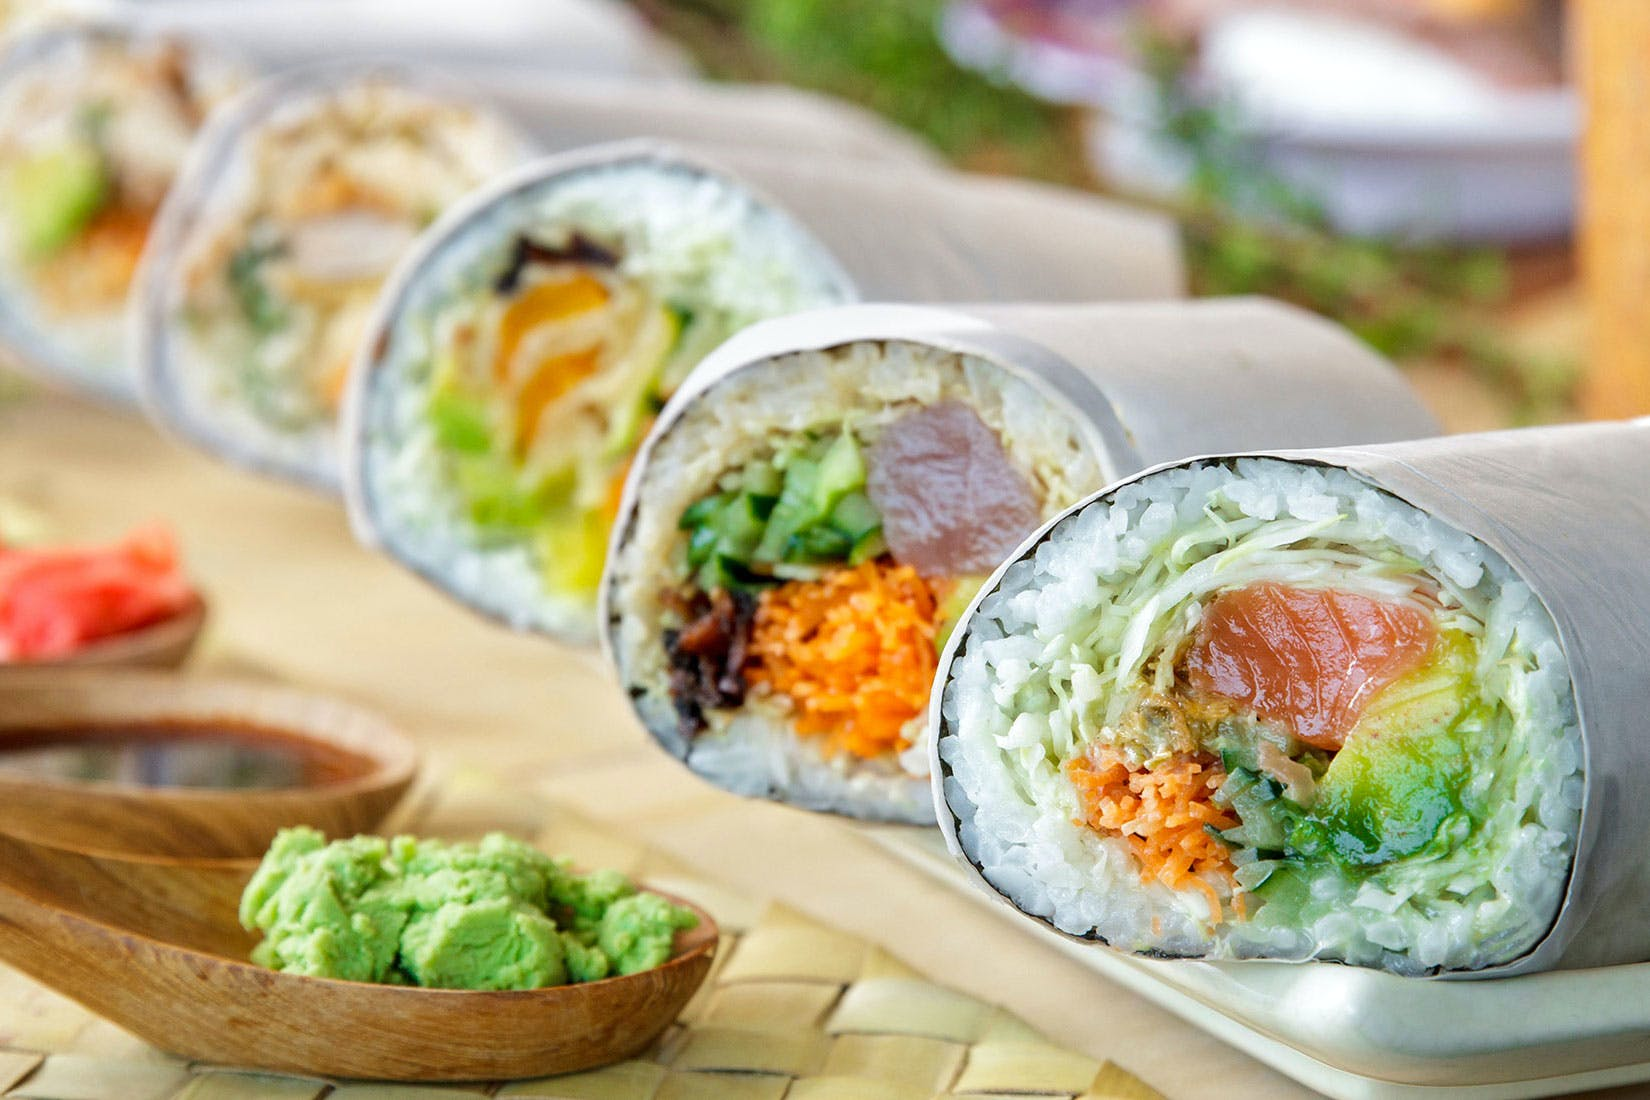 u-maki-sushi-burrito-now-open-katy-grand-crossing